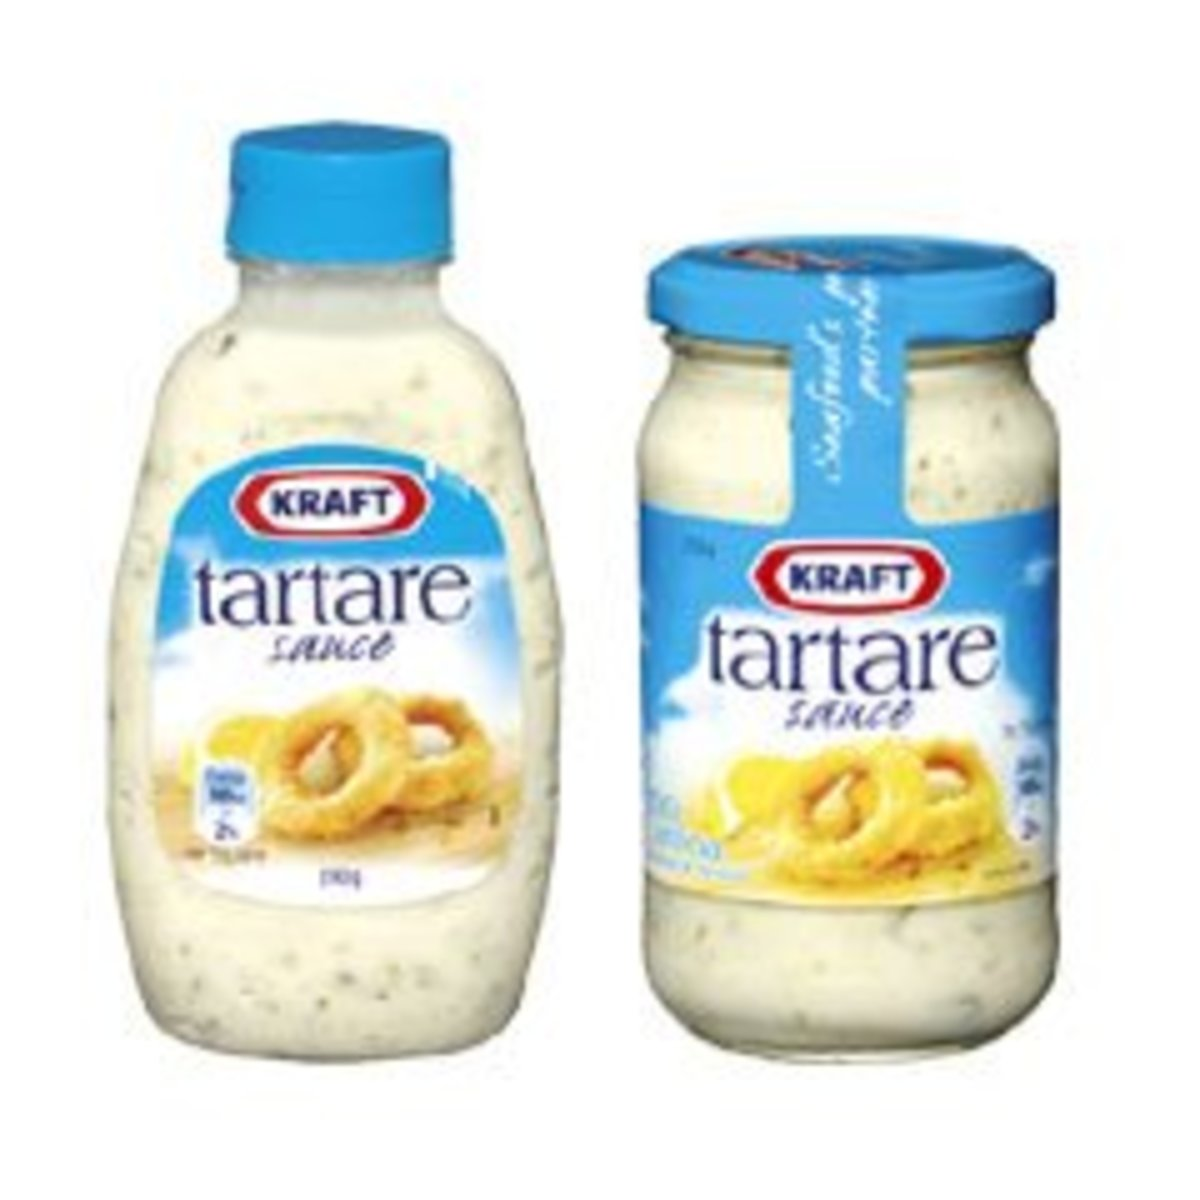 Serve with tartare sauce